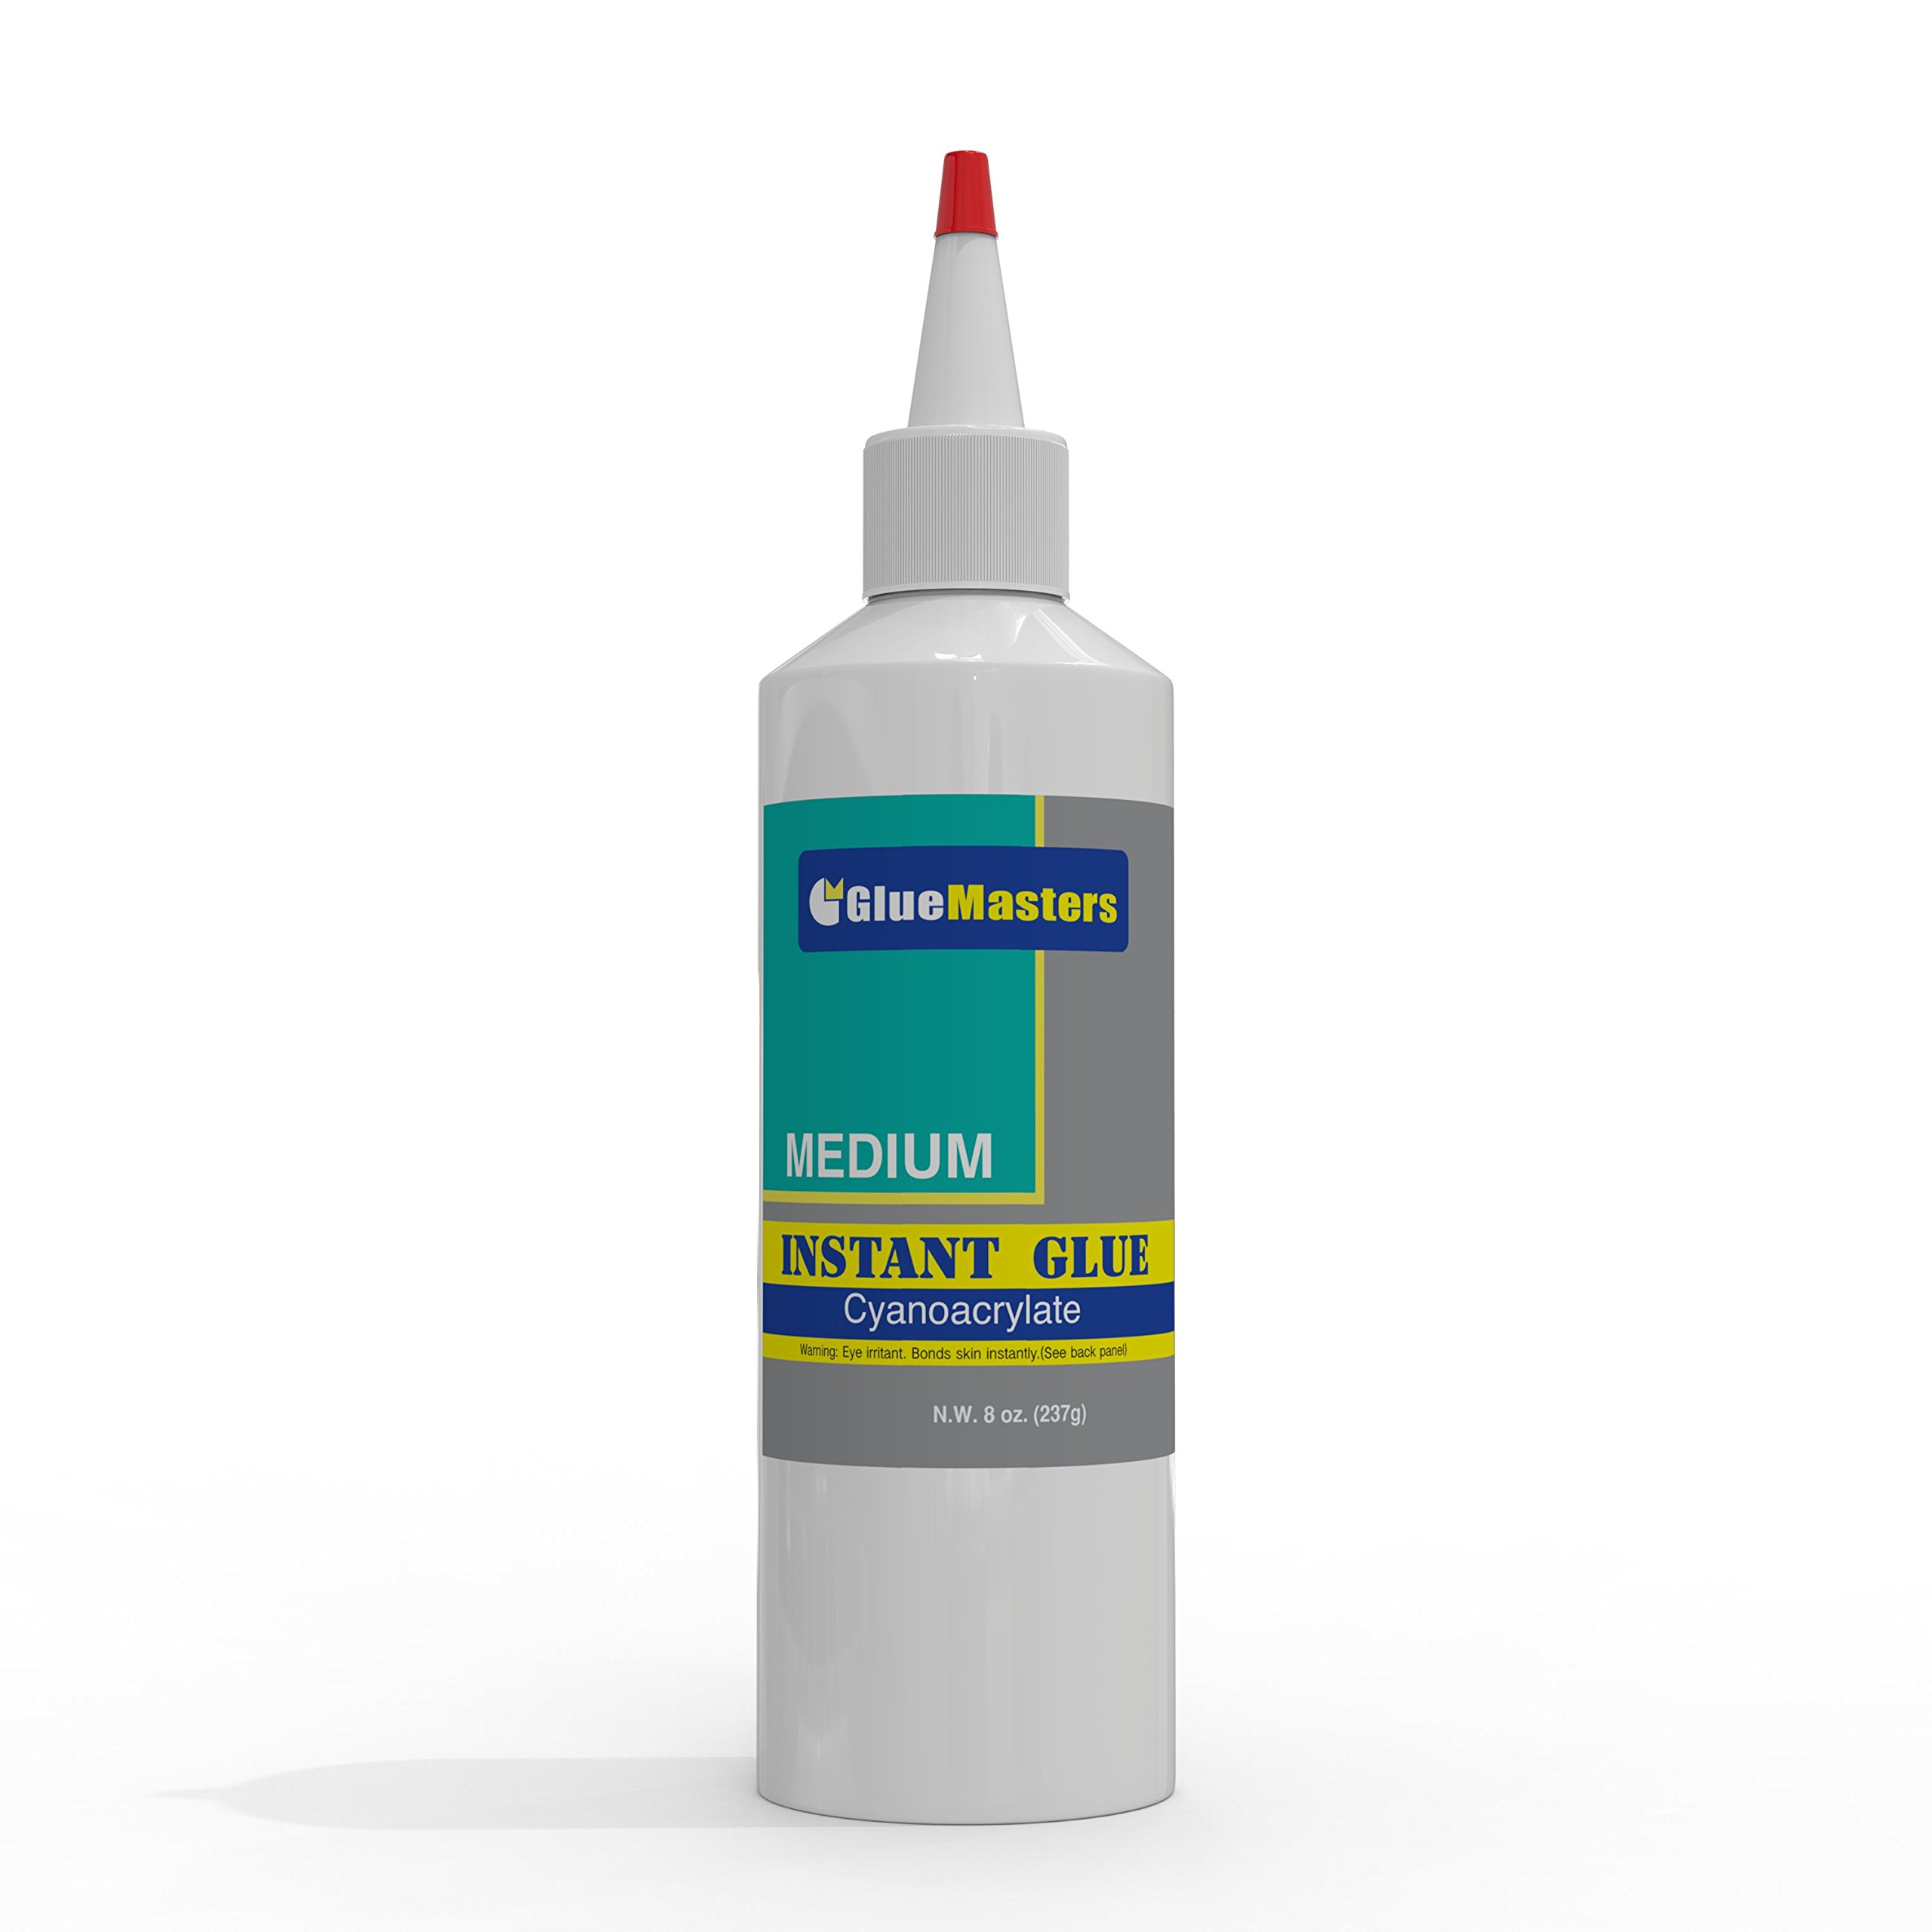 Professional Grade Cyanoacrylate (CA)''Super Glue'' by Glue Masters - Extra Large 8 OZ (226-gram) Bottle with Protective Cap - Medium Viscosity Adhesive for Plastic, Wood & DIY Crafts by Glue Masters